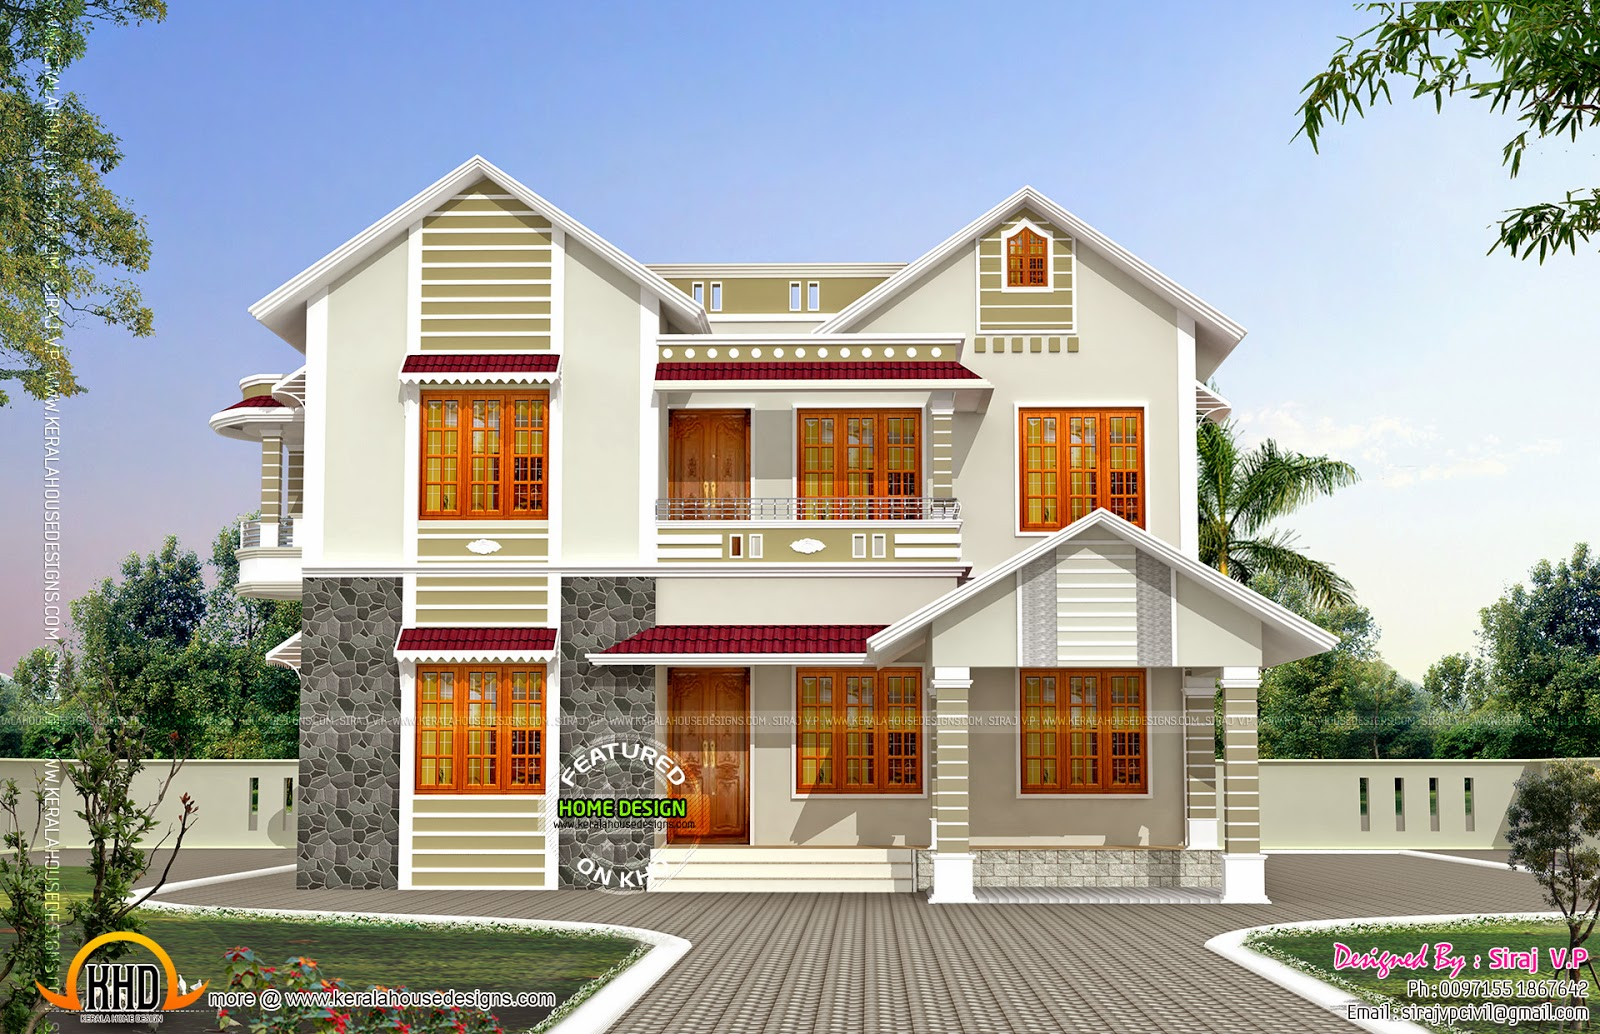 10 home design front view images modern house design